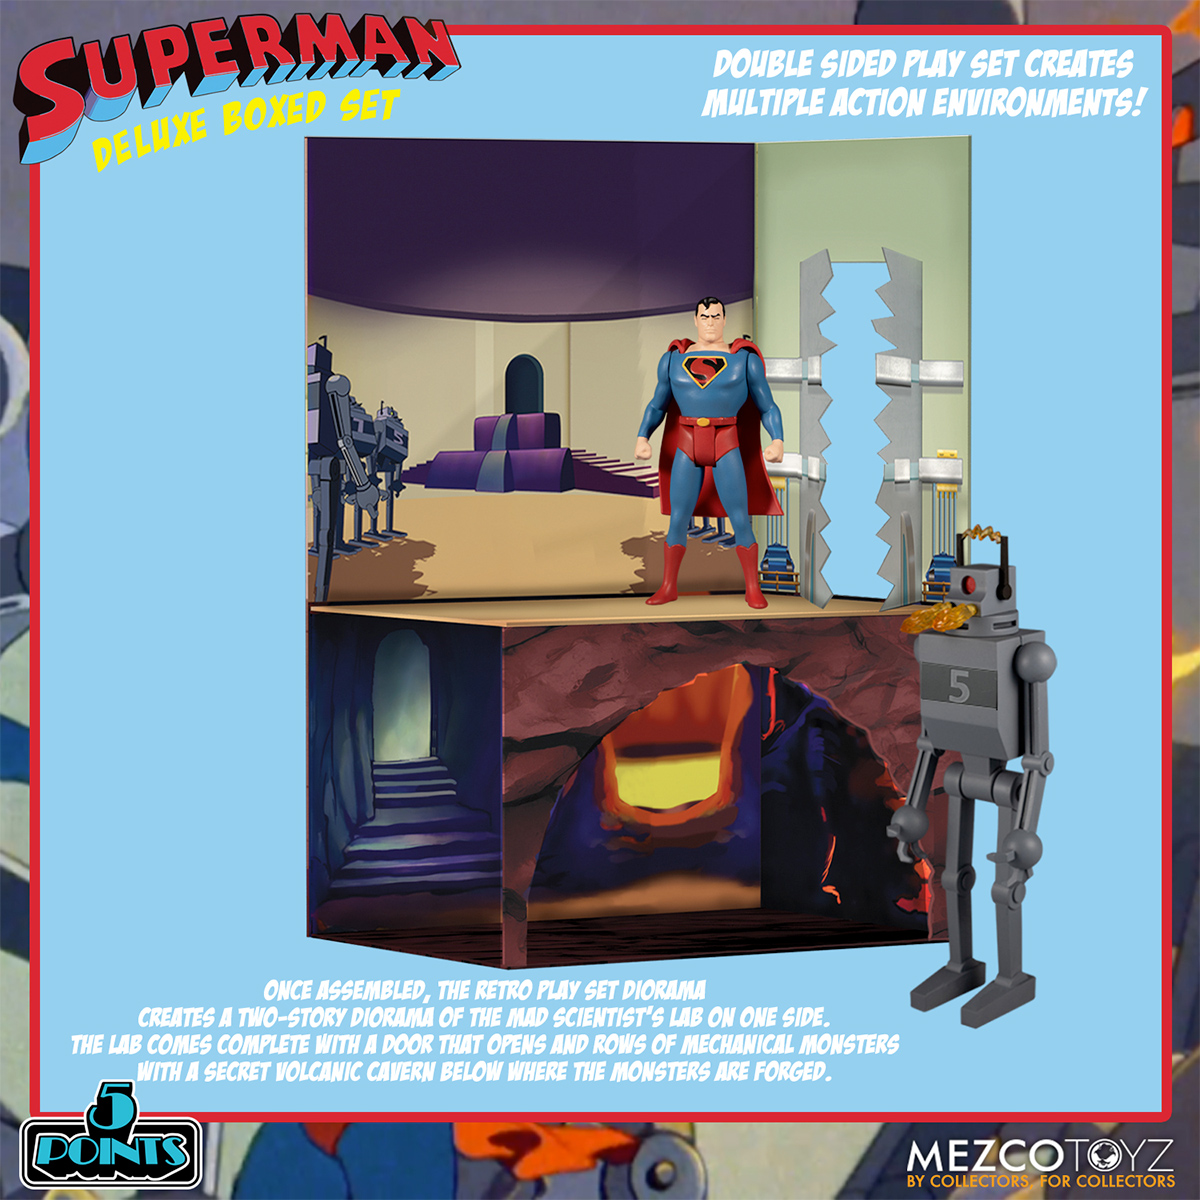 Superman - The Mechanical Monsters (1941) 5 Points Figures Deluxe Boxed Set